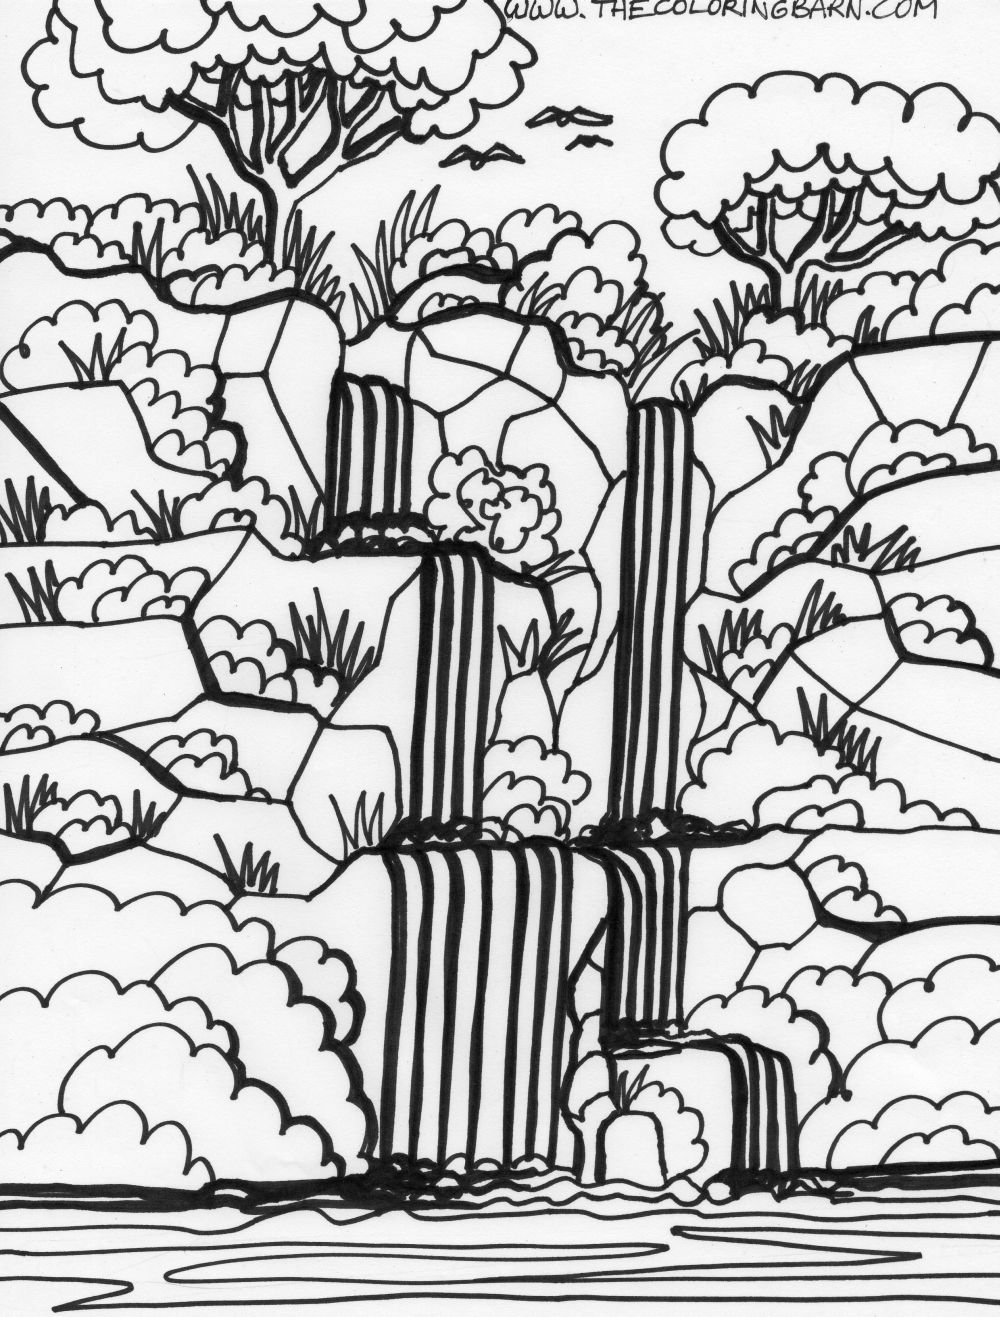 Rainforest Trees Coloring Pages